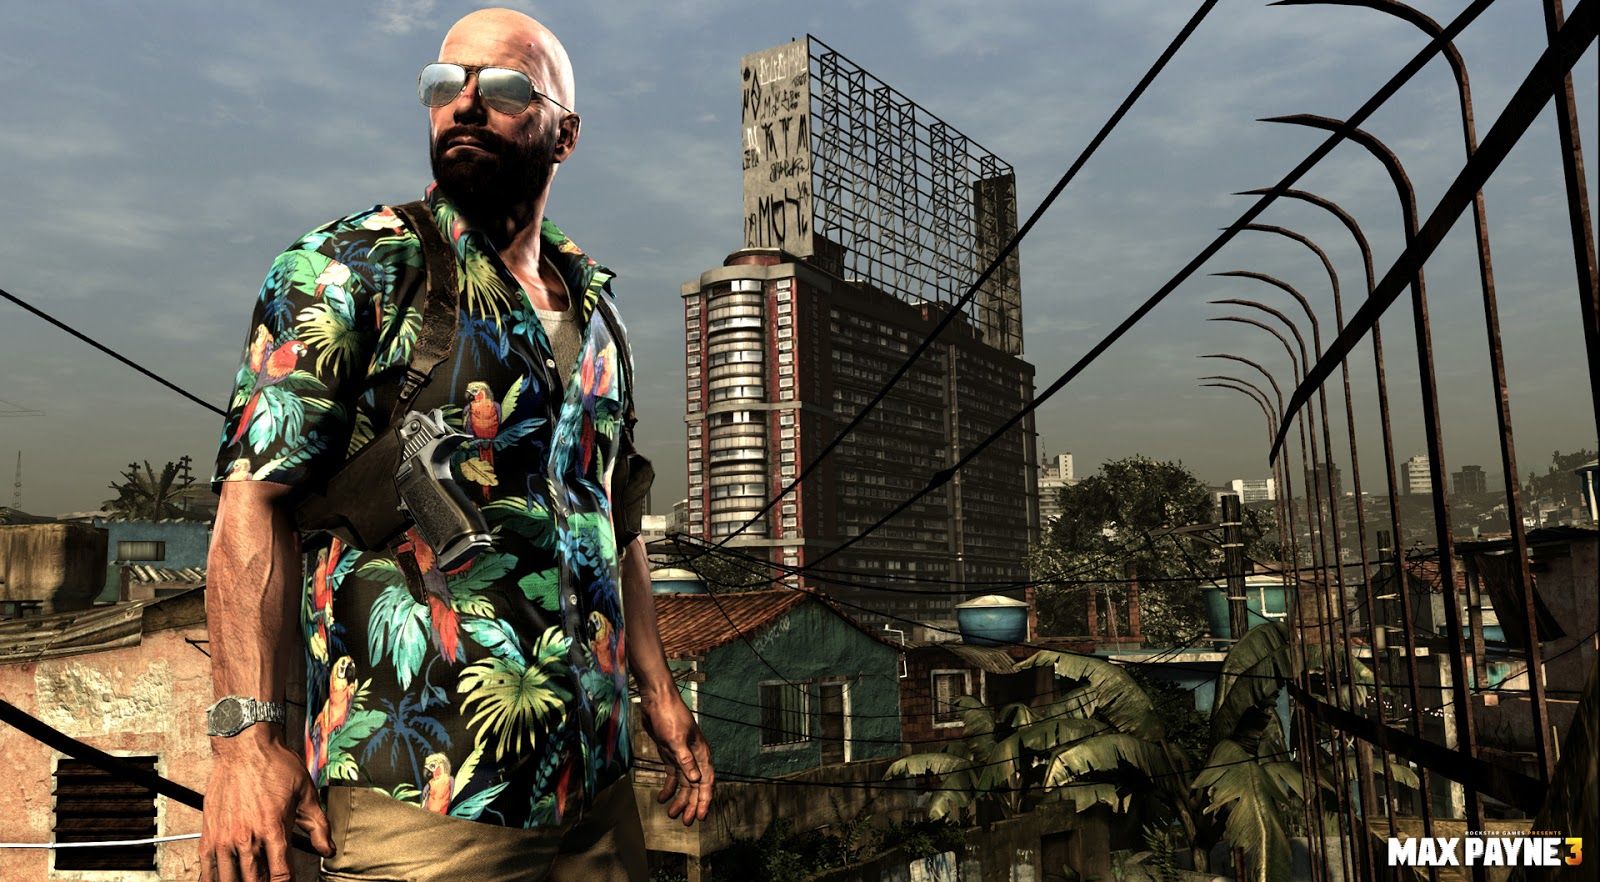 max payne 1 free download myegy